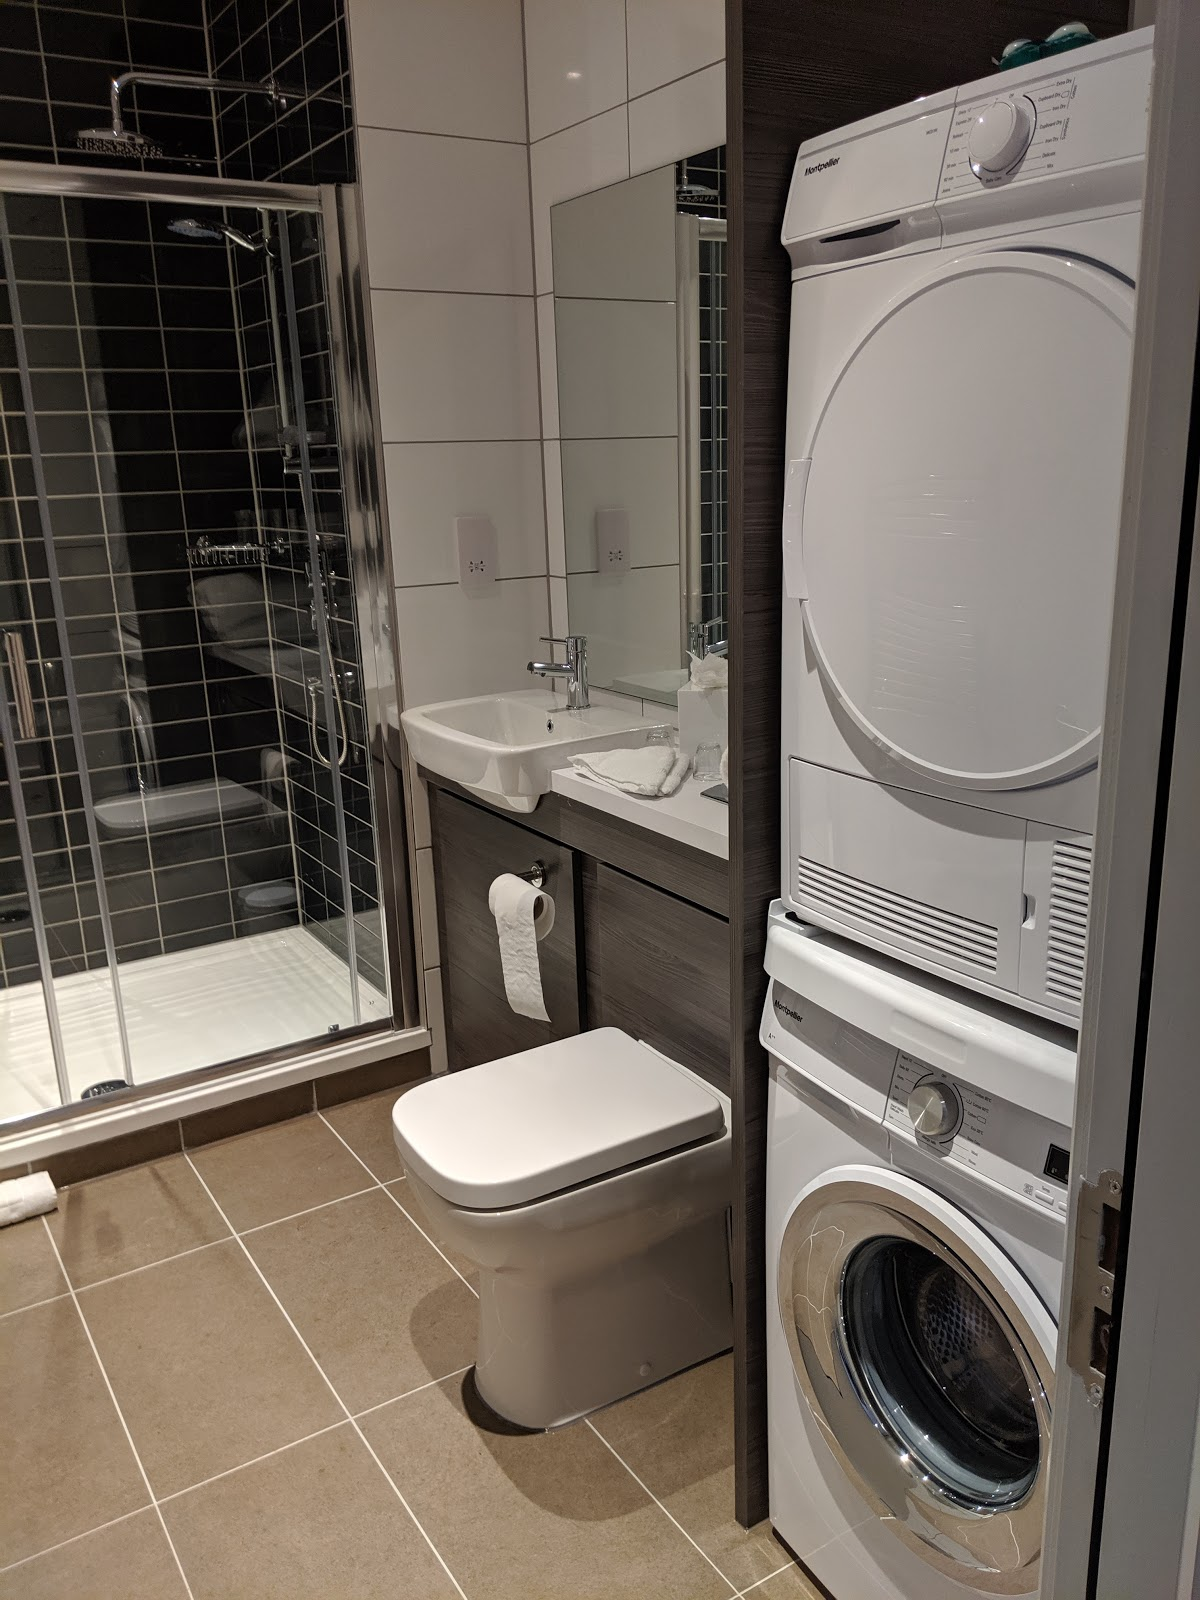 A Guide to Visiting Liverpool Christmas Markets & Lights  - quest apartments liverpool city centre - bathroom and washing machine